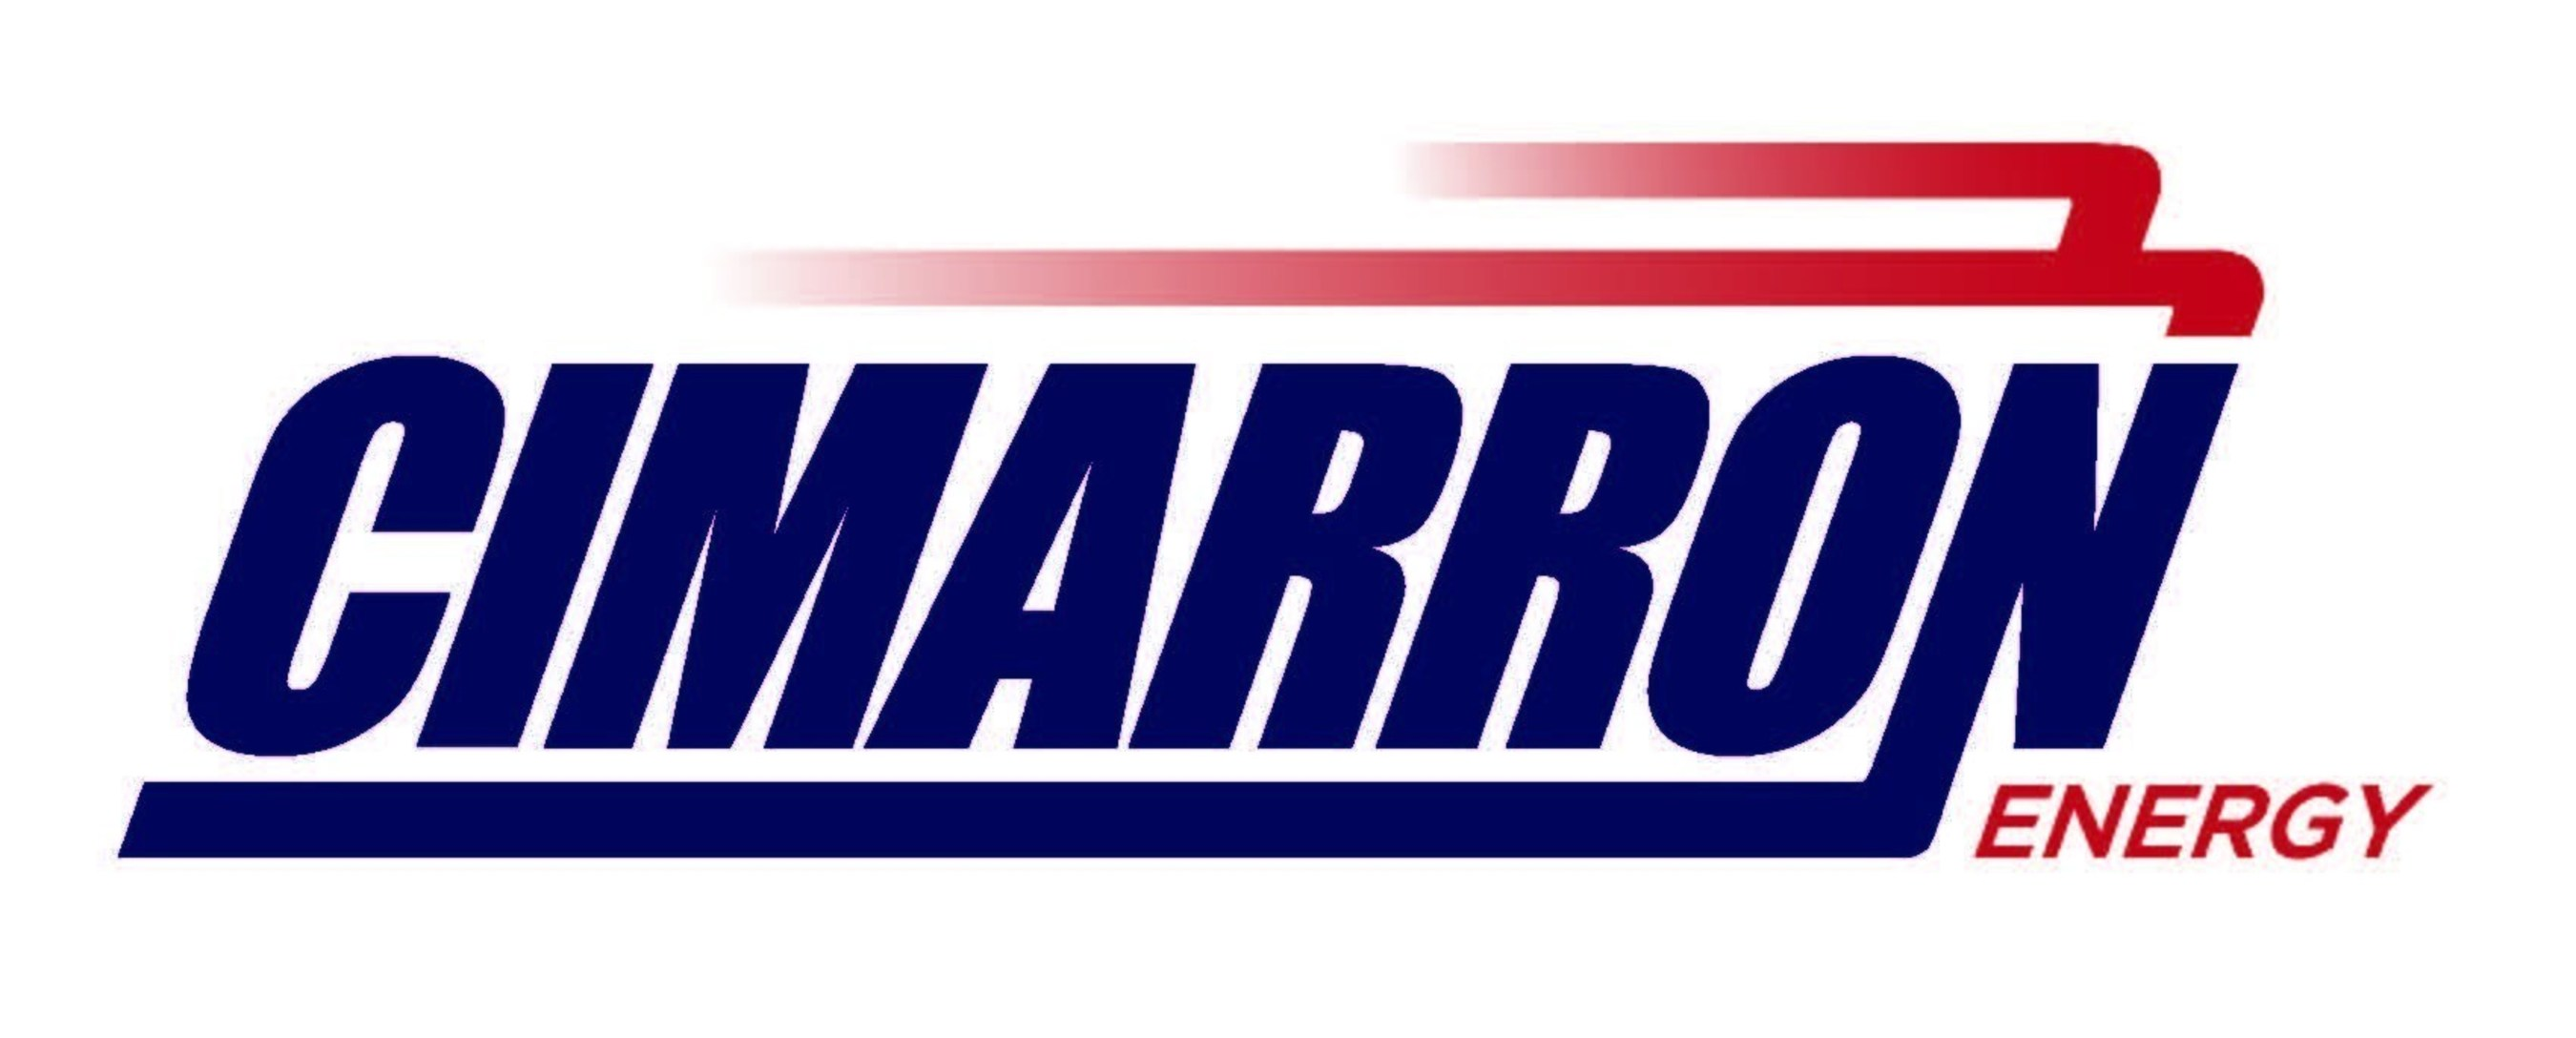 1 2016 Prnewswire Cimarron Energy Announced Today That It Has Closed On The Acquisition Of Substantially All Ets Diverse Systems